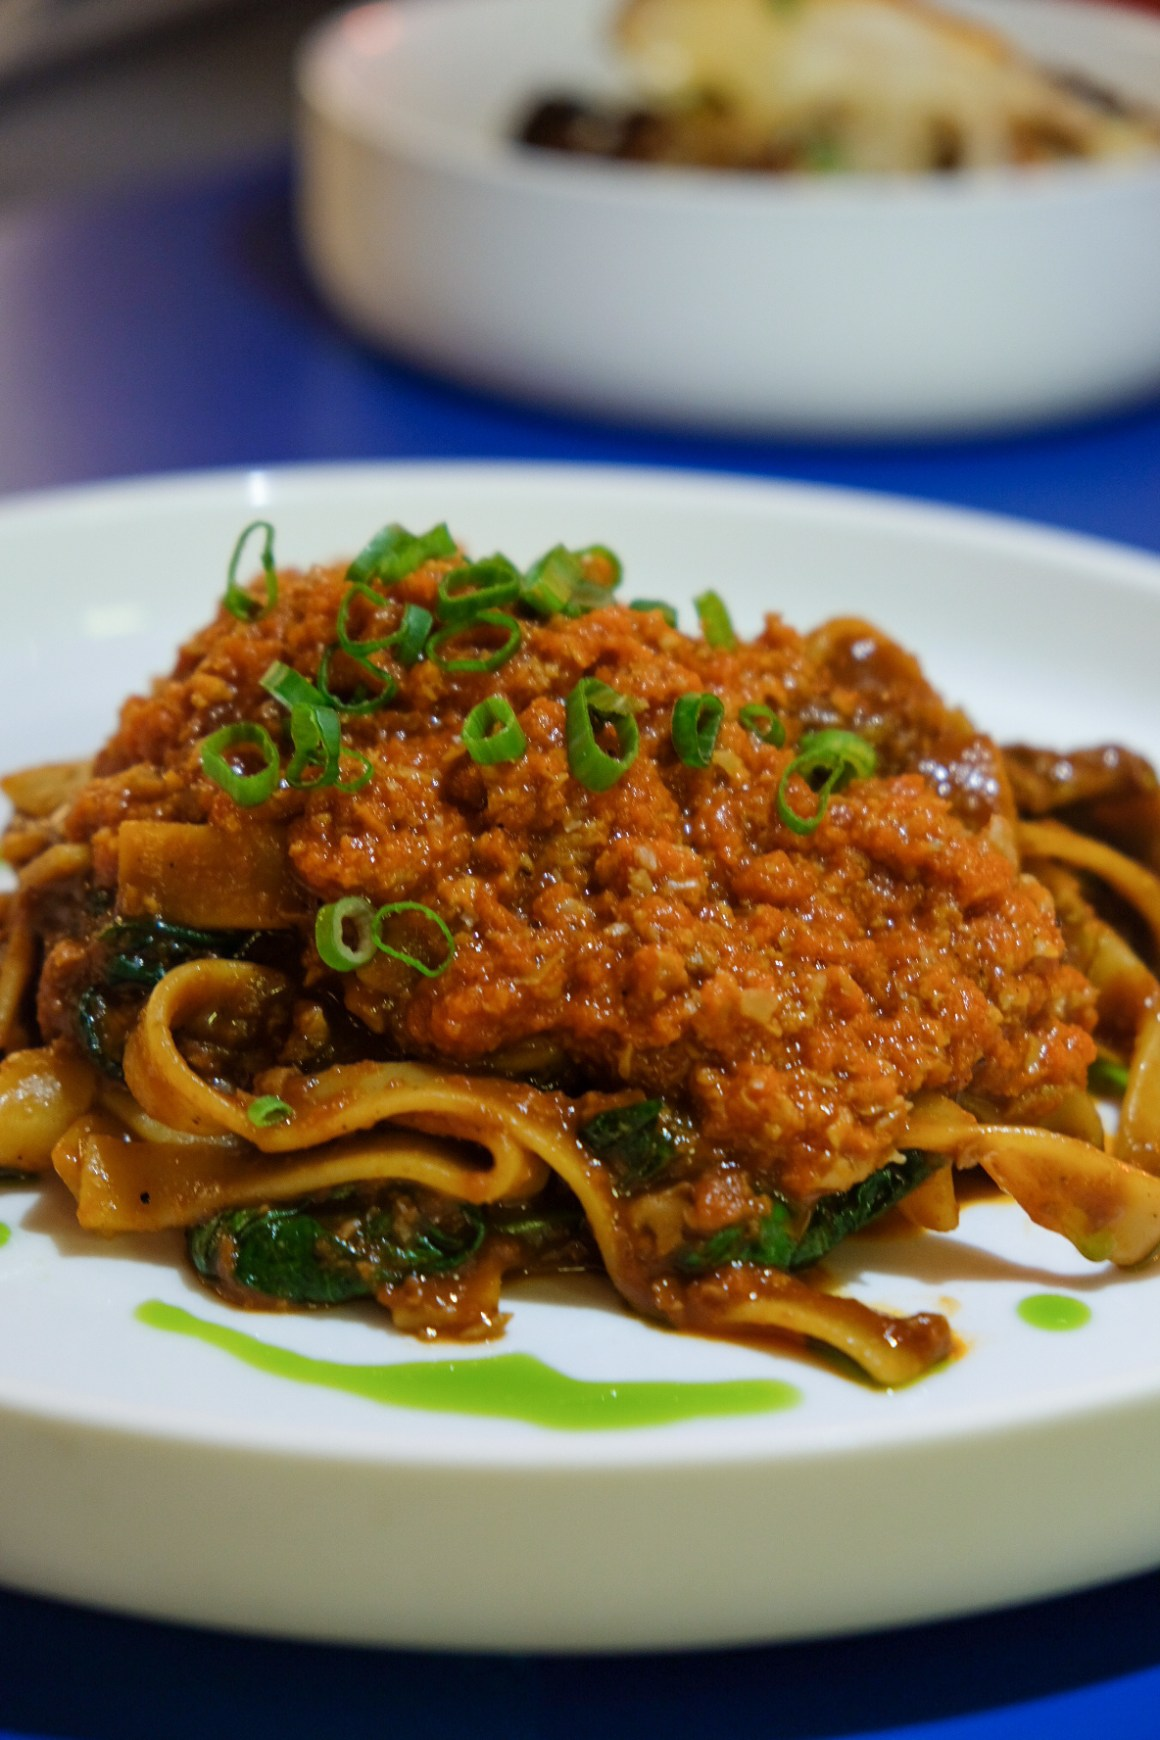 The Garden Club Serving Healthy Food At Downtown Gallery - Garden Ragu Fettucine ($15)